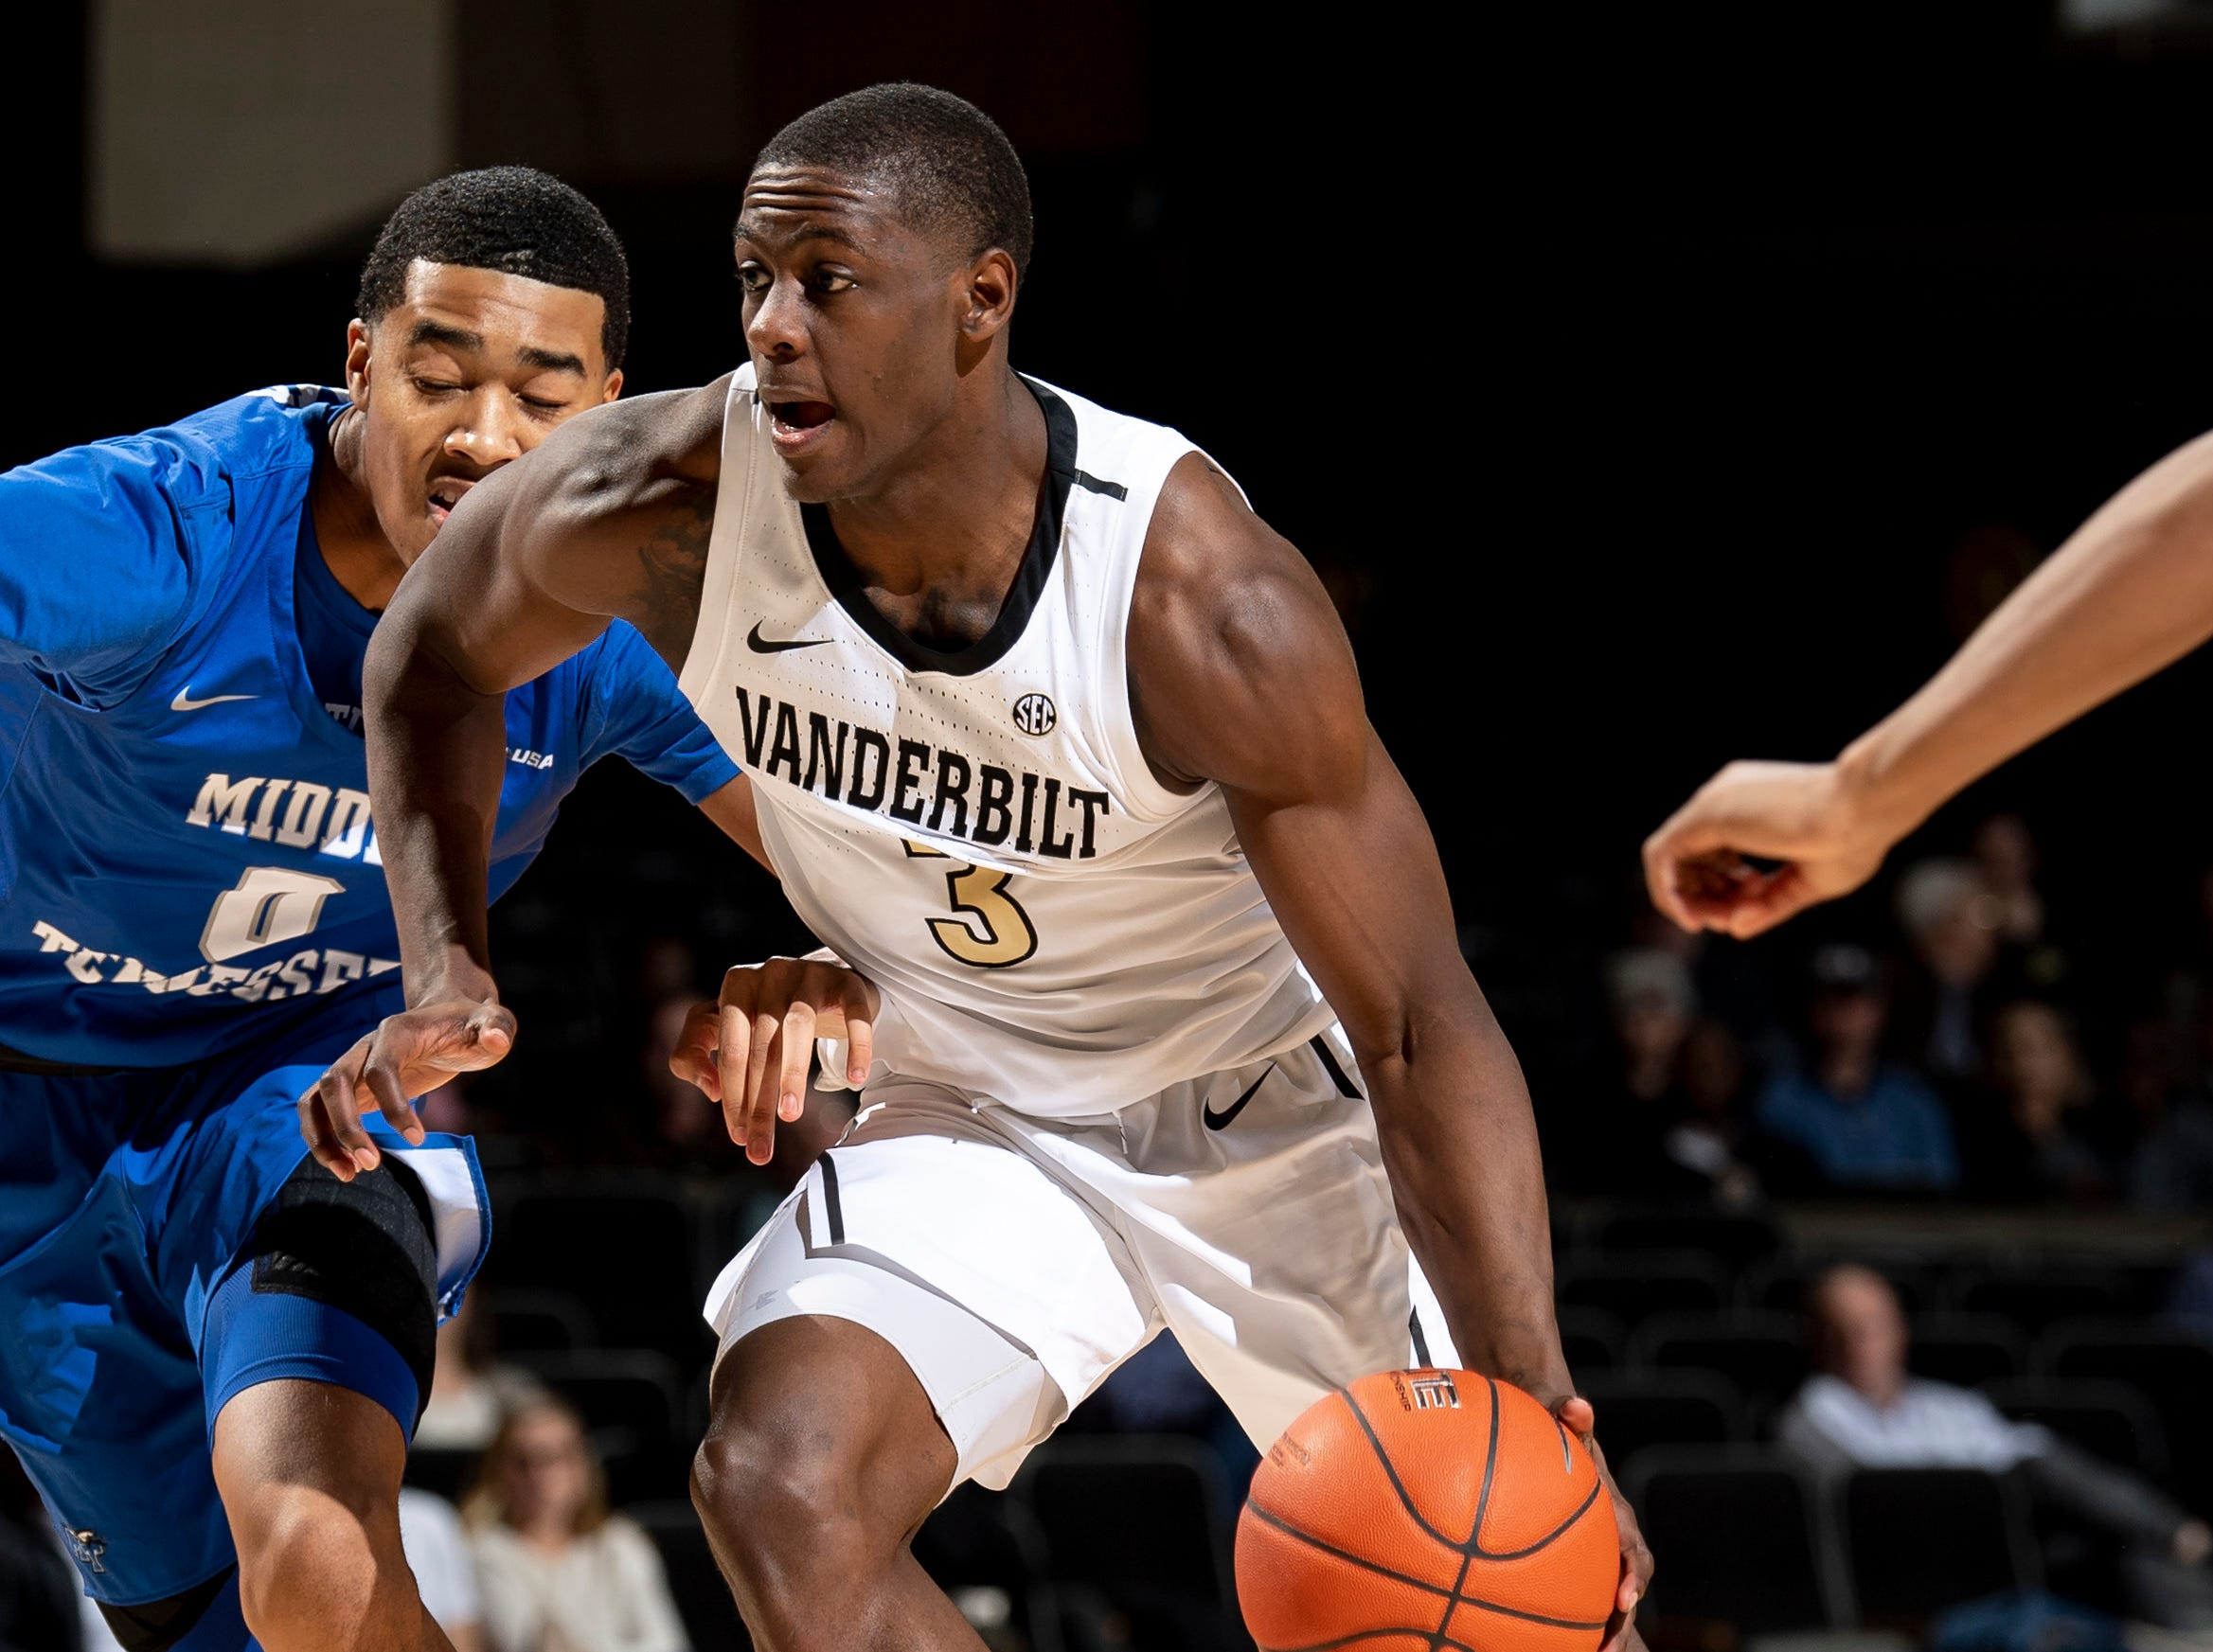 Vanderbilt guard Maxwell Evans (3) advances past MTSU guard Anthony Crump (0) during the second half at Memorial Gym in Nashville, Tenn., Wednesday, Dec. 5, 2018.